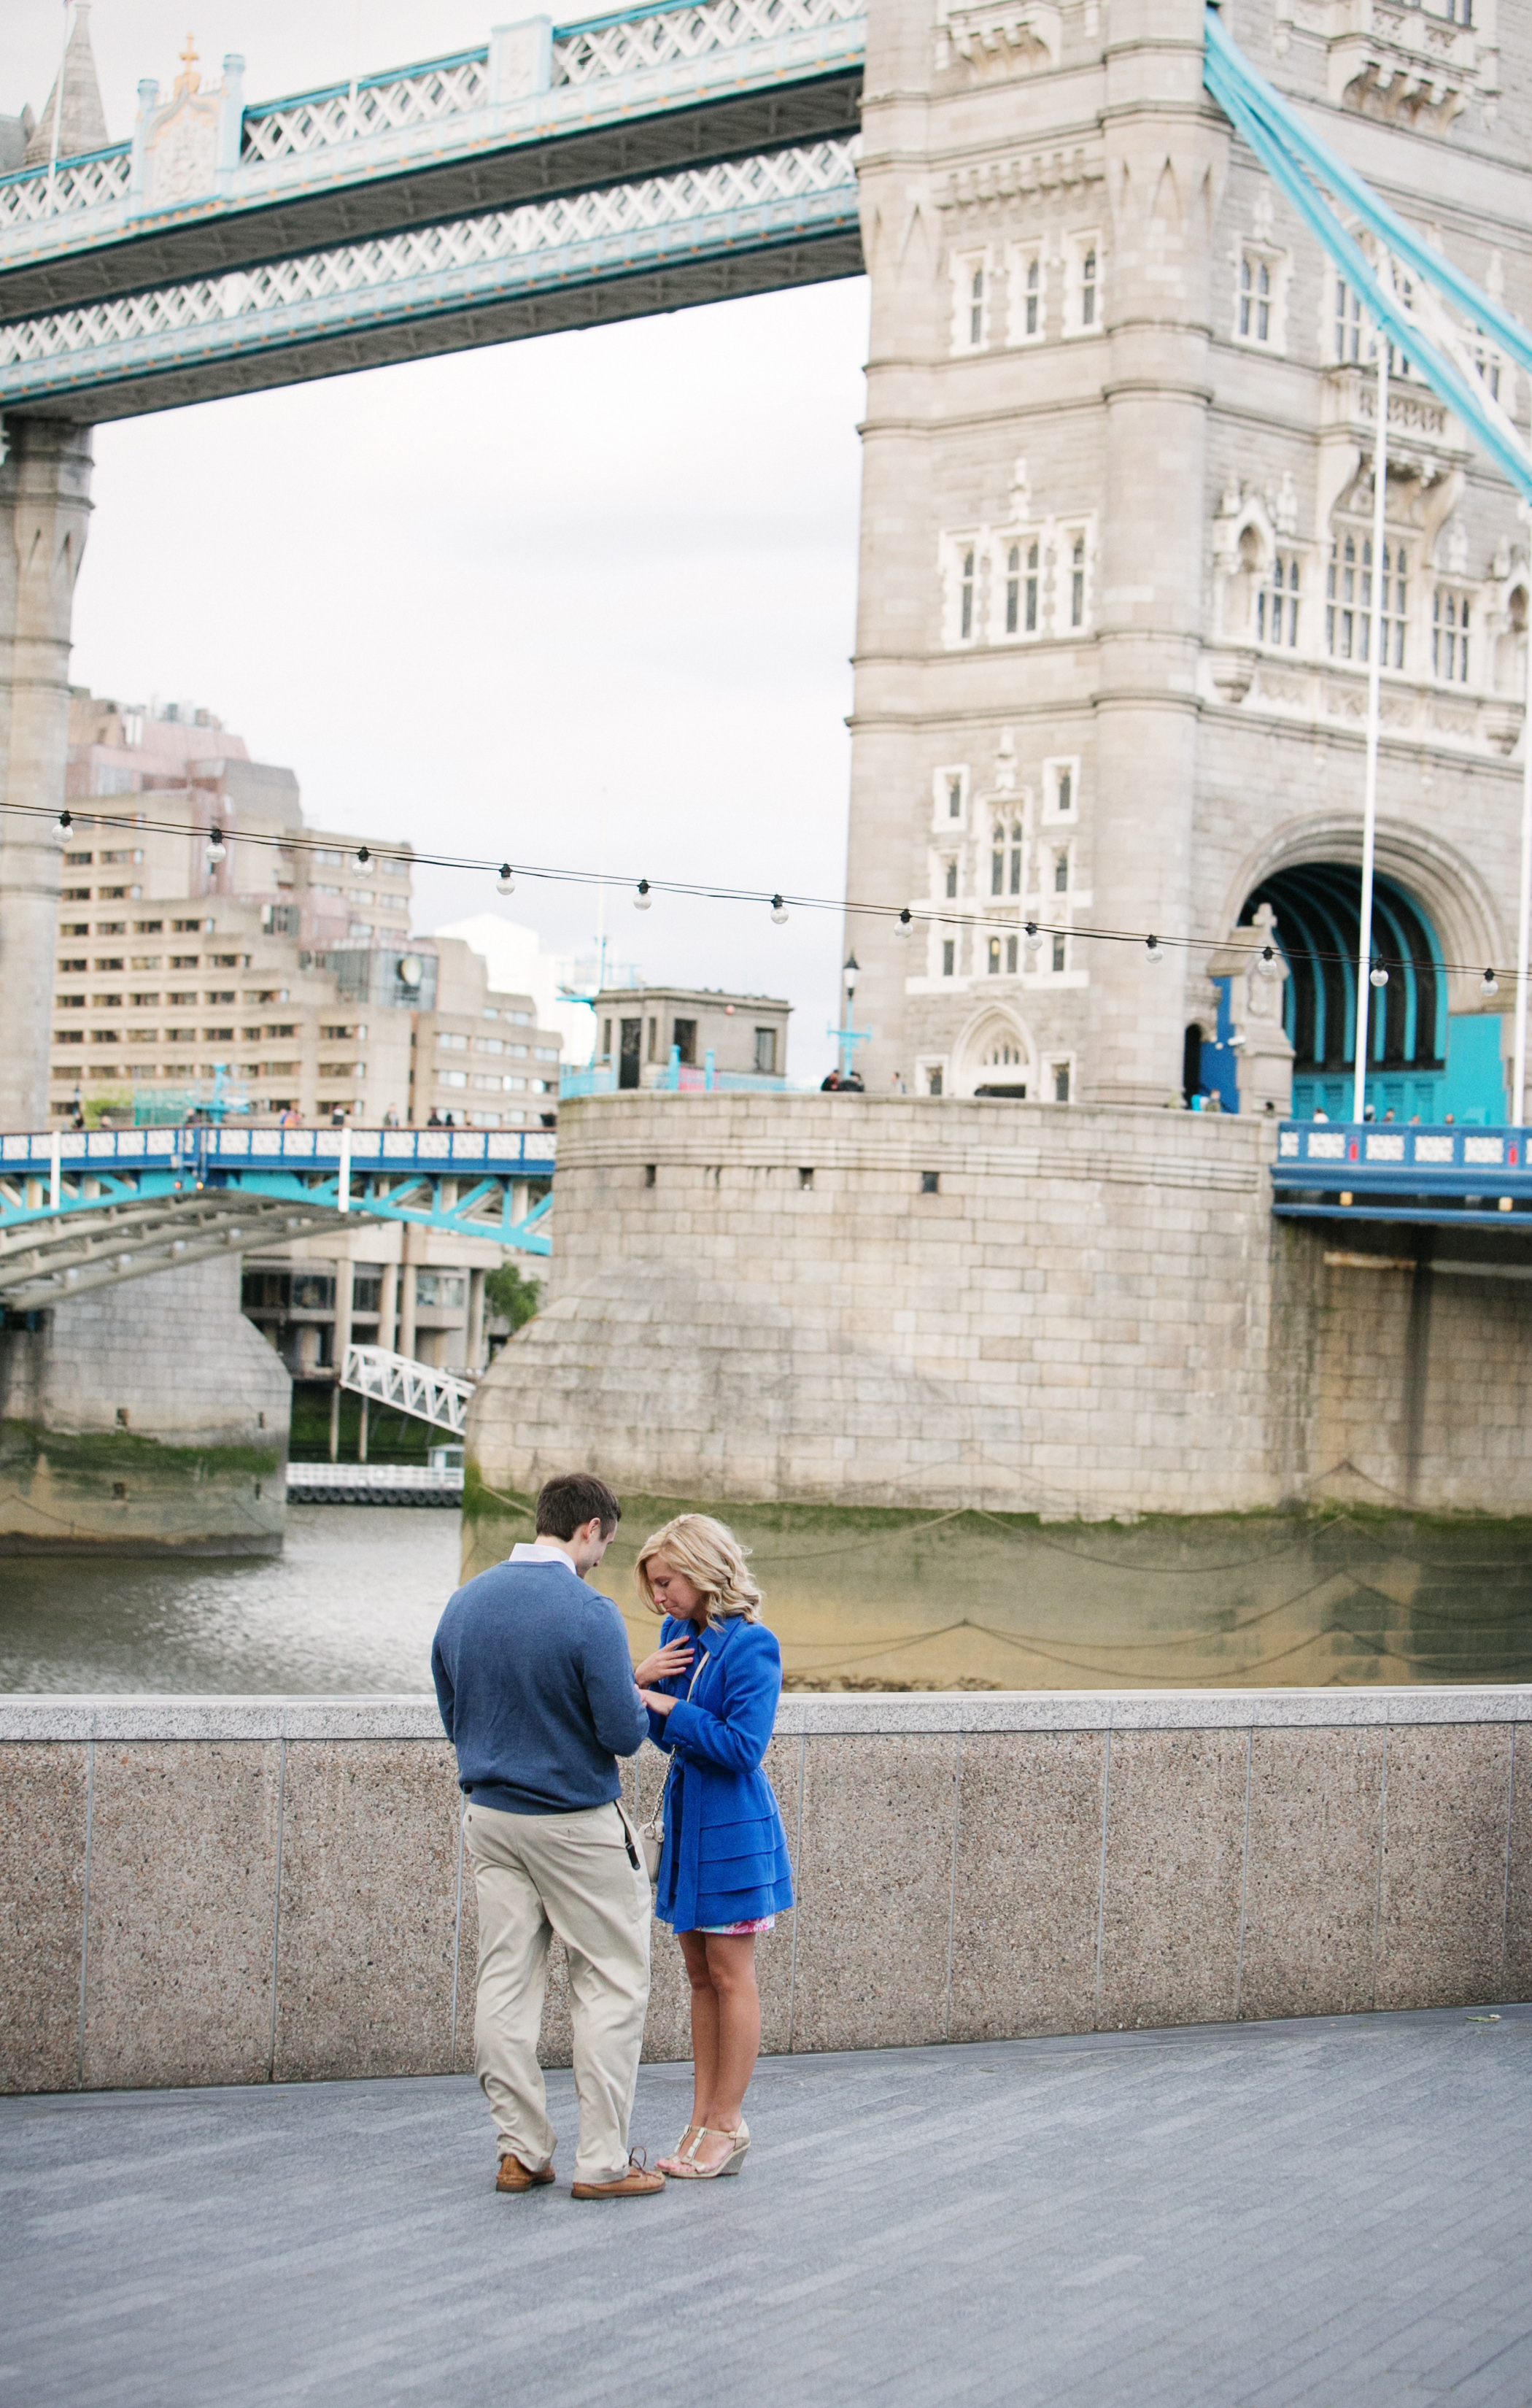 Image 11 of Kevin & Katie's Tower Bridge Proposal in London